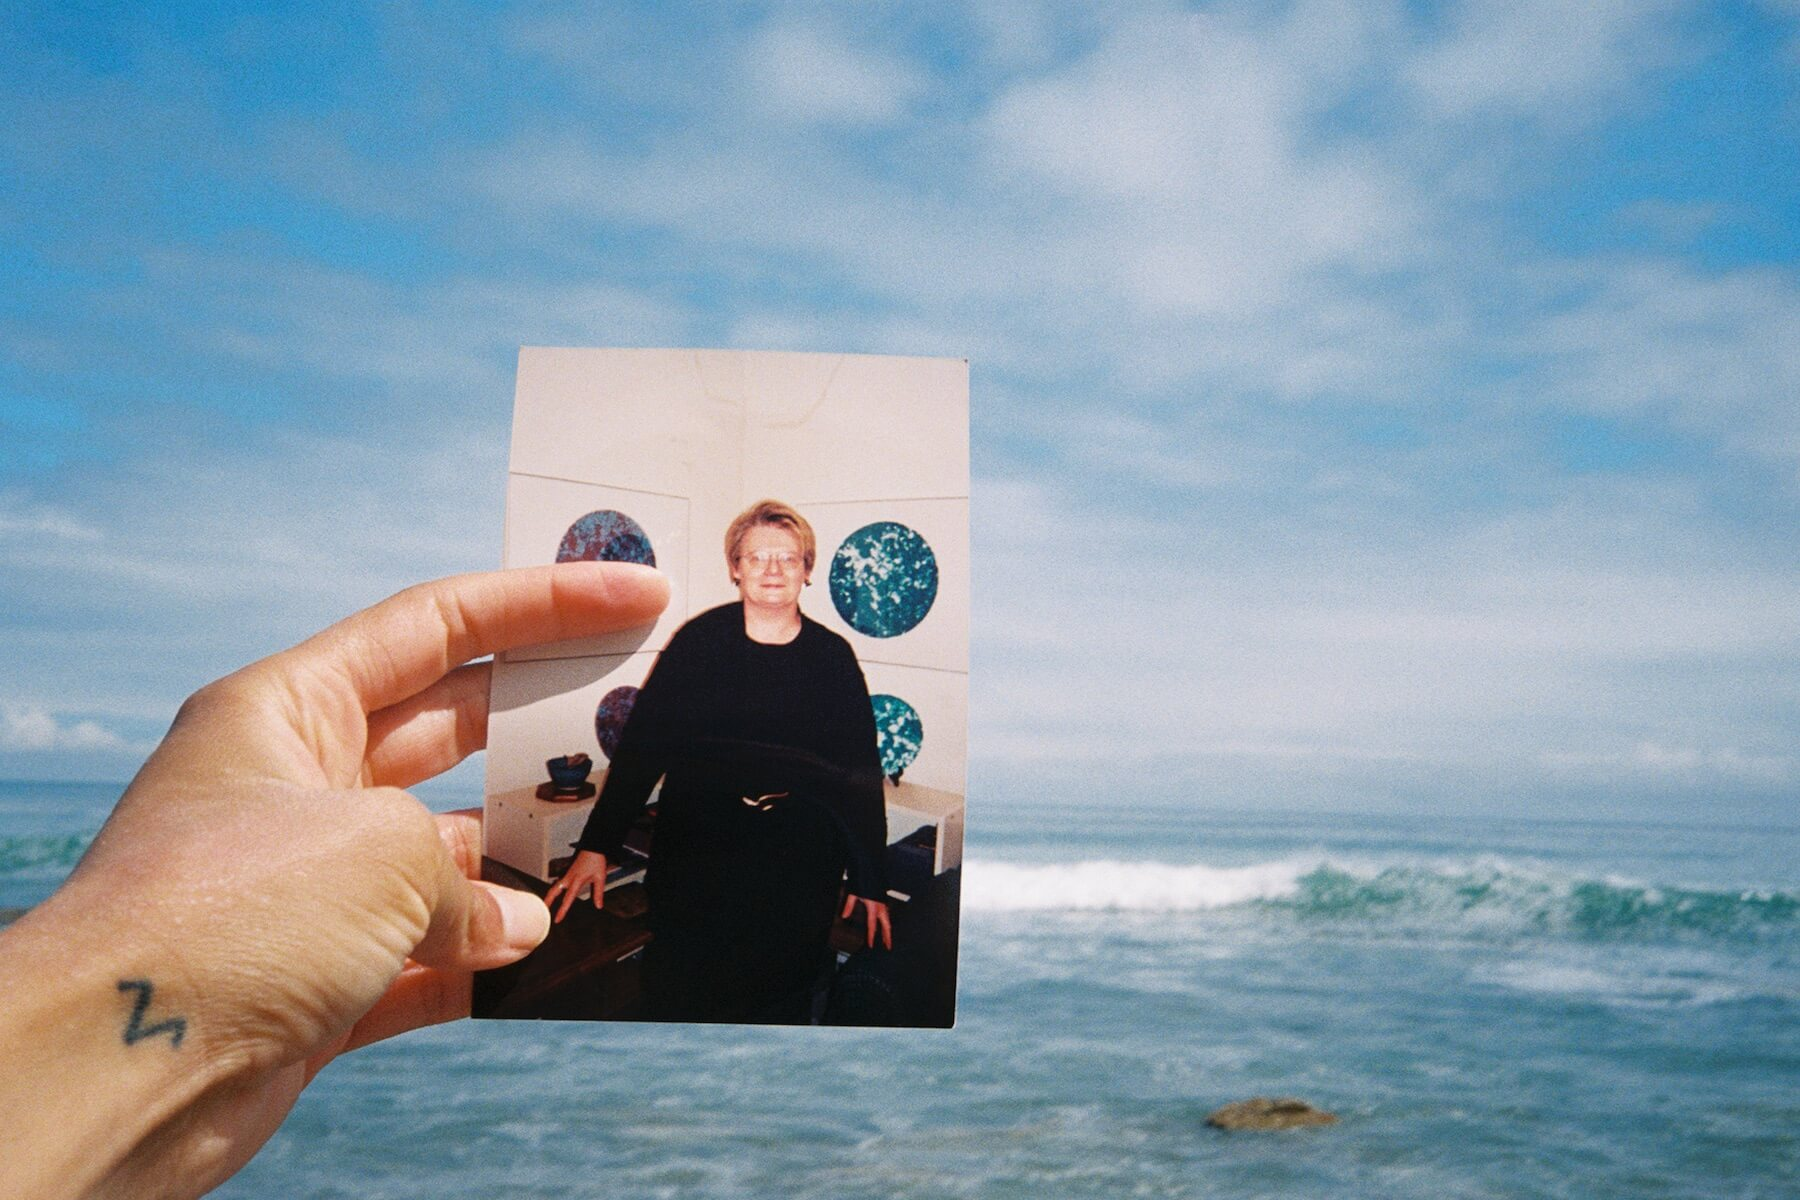 A photograph of a white person's hand holding a photograph of an older white woman. In the background is a large body of water.